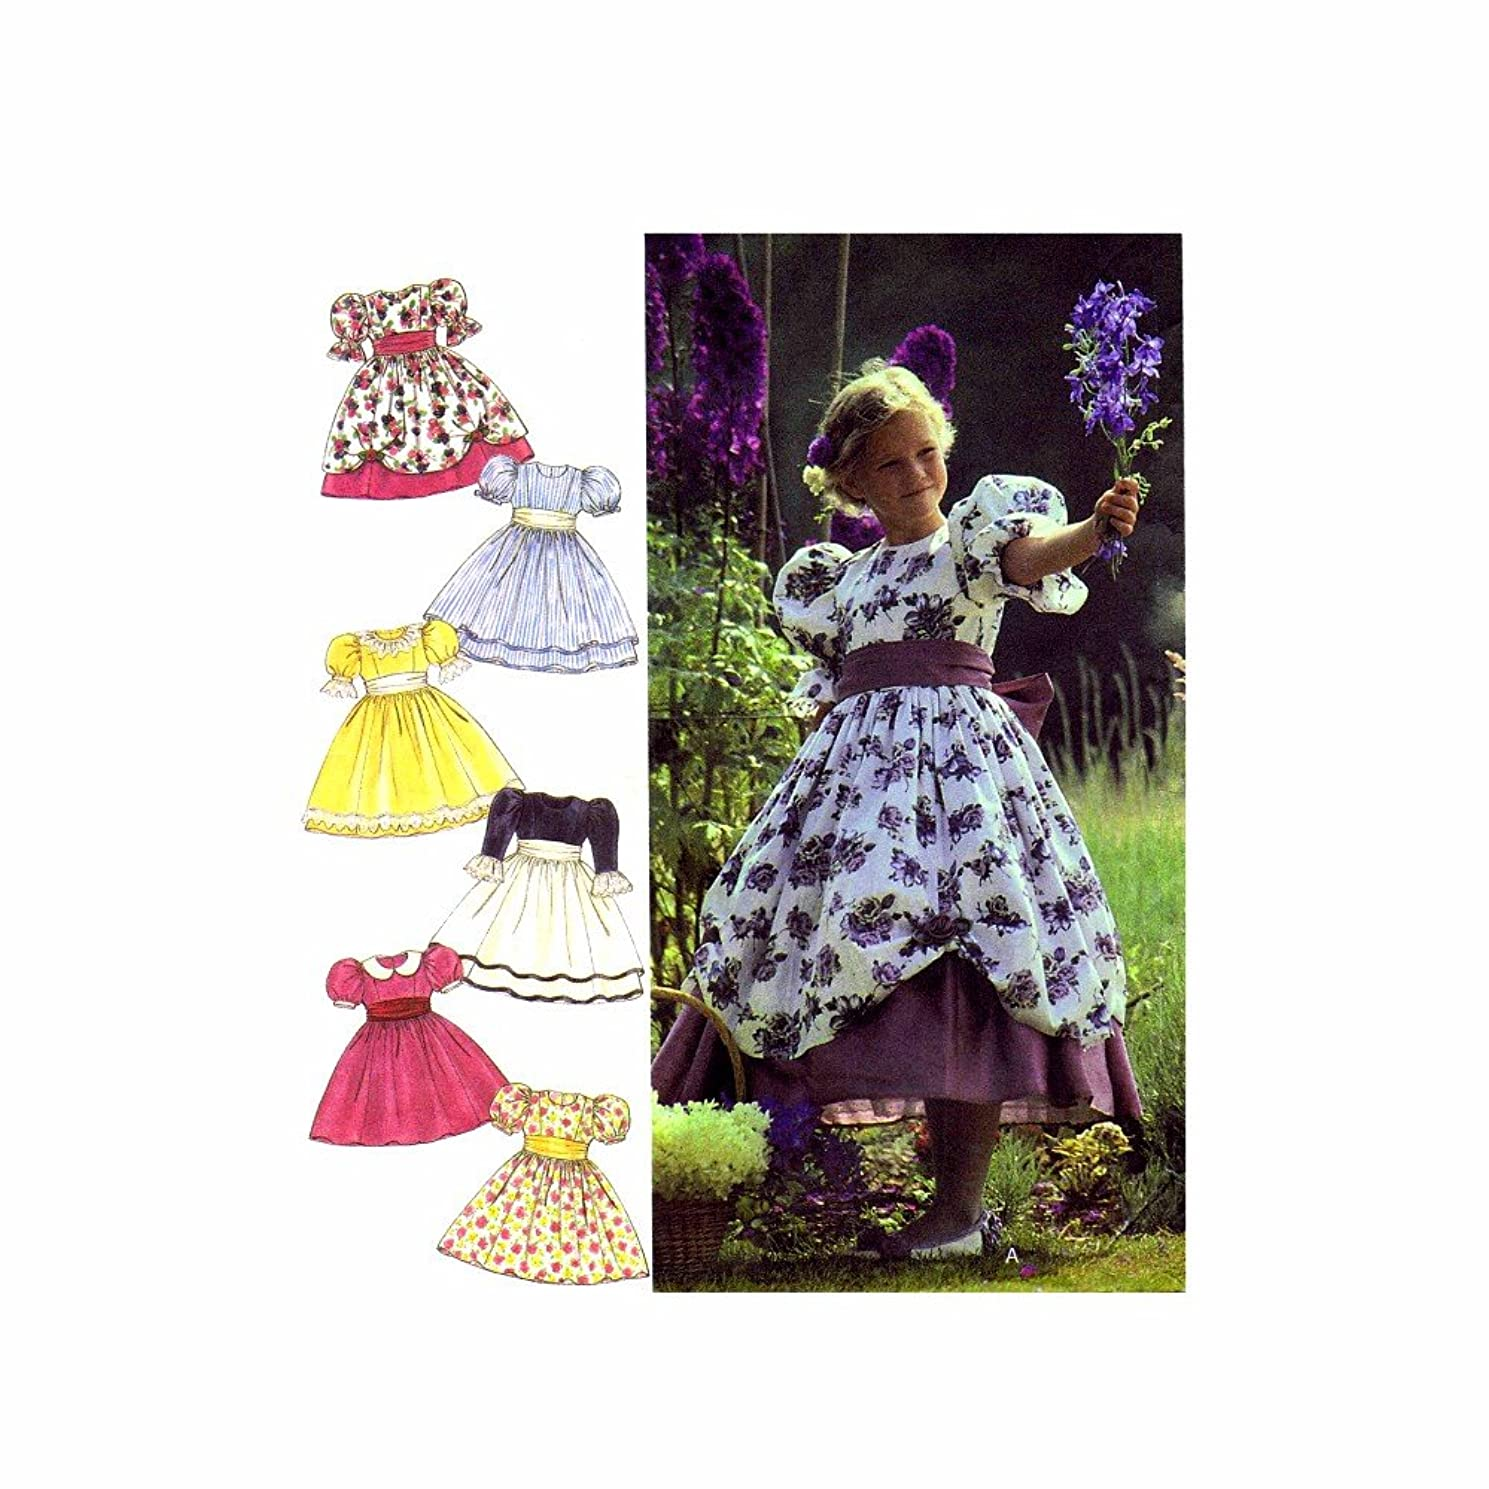 Girls Full Skirt Dress with Overskirt Style 2715 Sewing Pattern Size 3 - 4 - 5 - 6 - 7 - 8